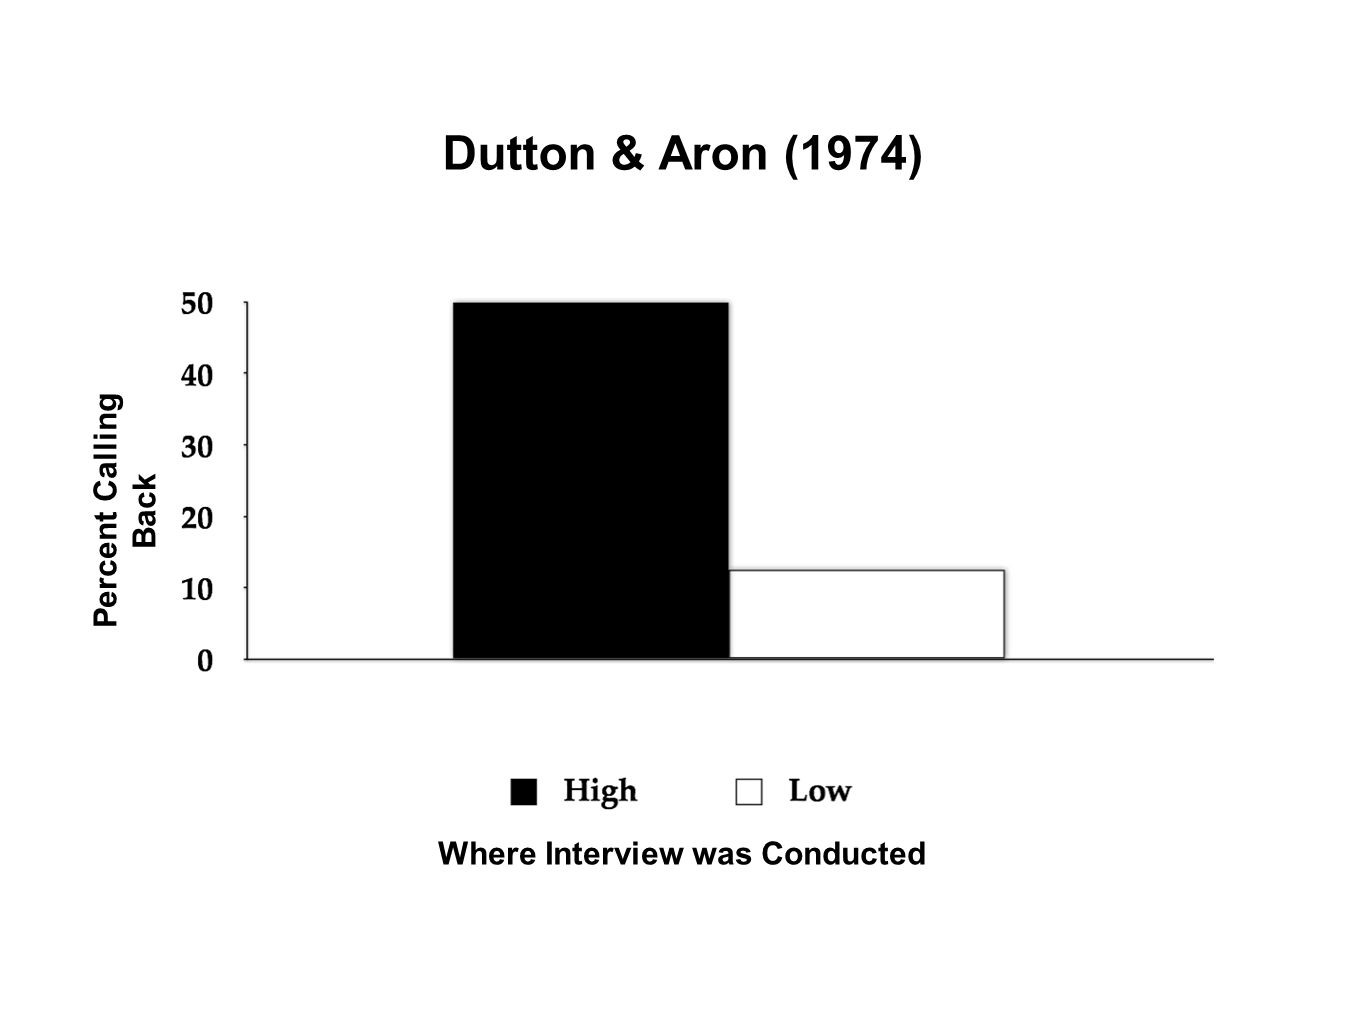 Dutton & Aron (1974) Where Interview was Conducted Percent Calling Back